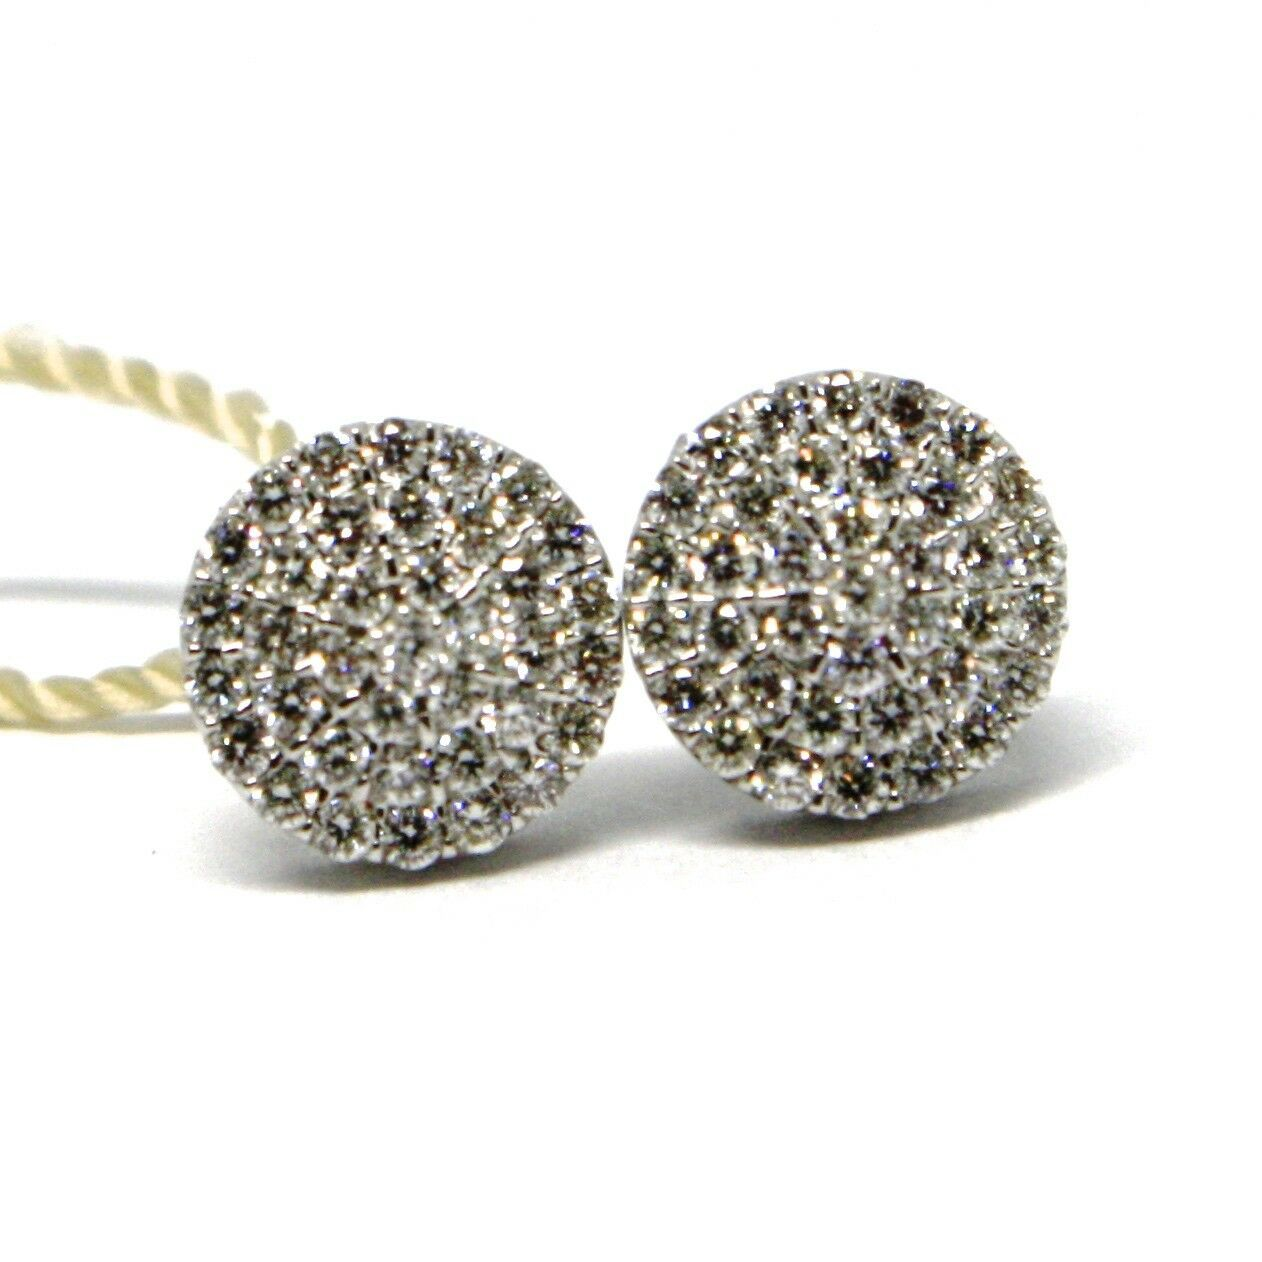 White Gold Earrings 750 18K, Diamond Carat 0.50, Button, round, Pave 8 MM